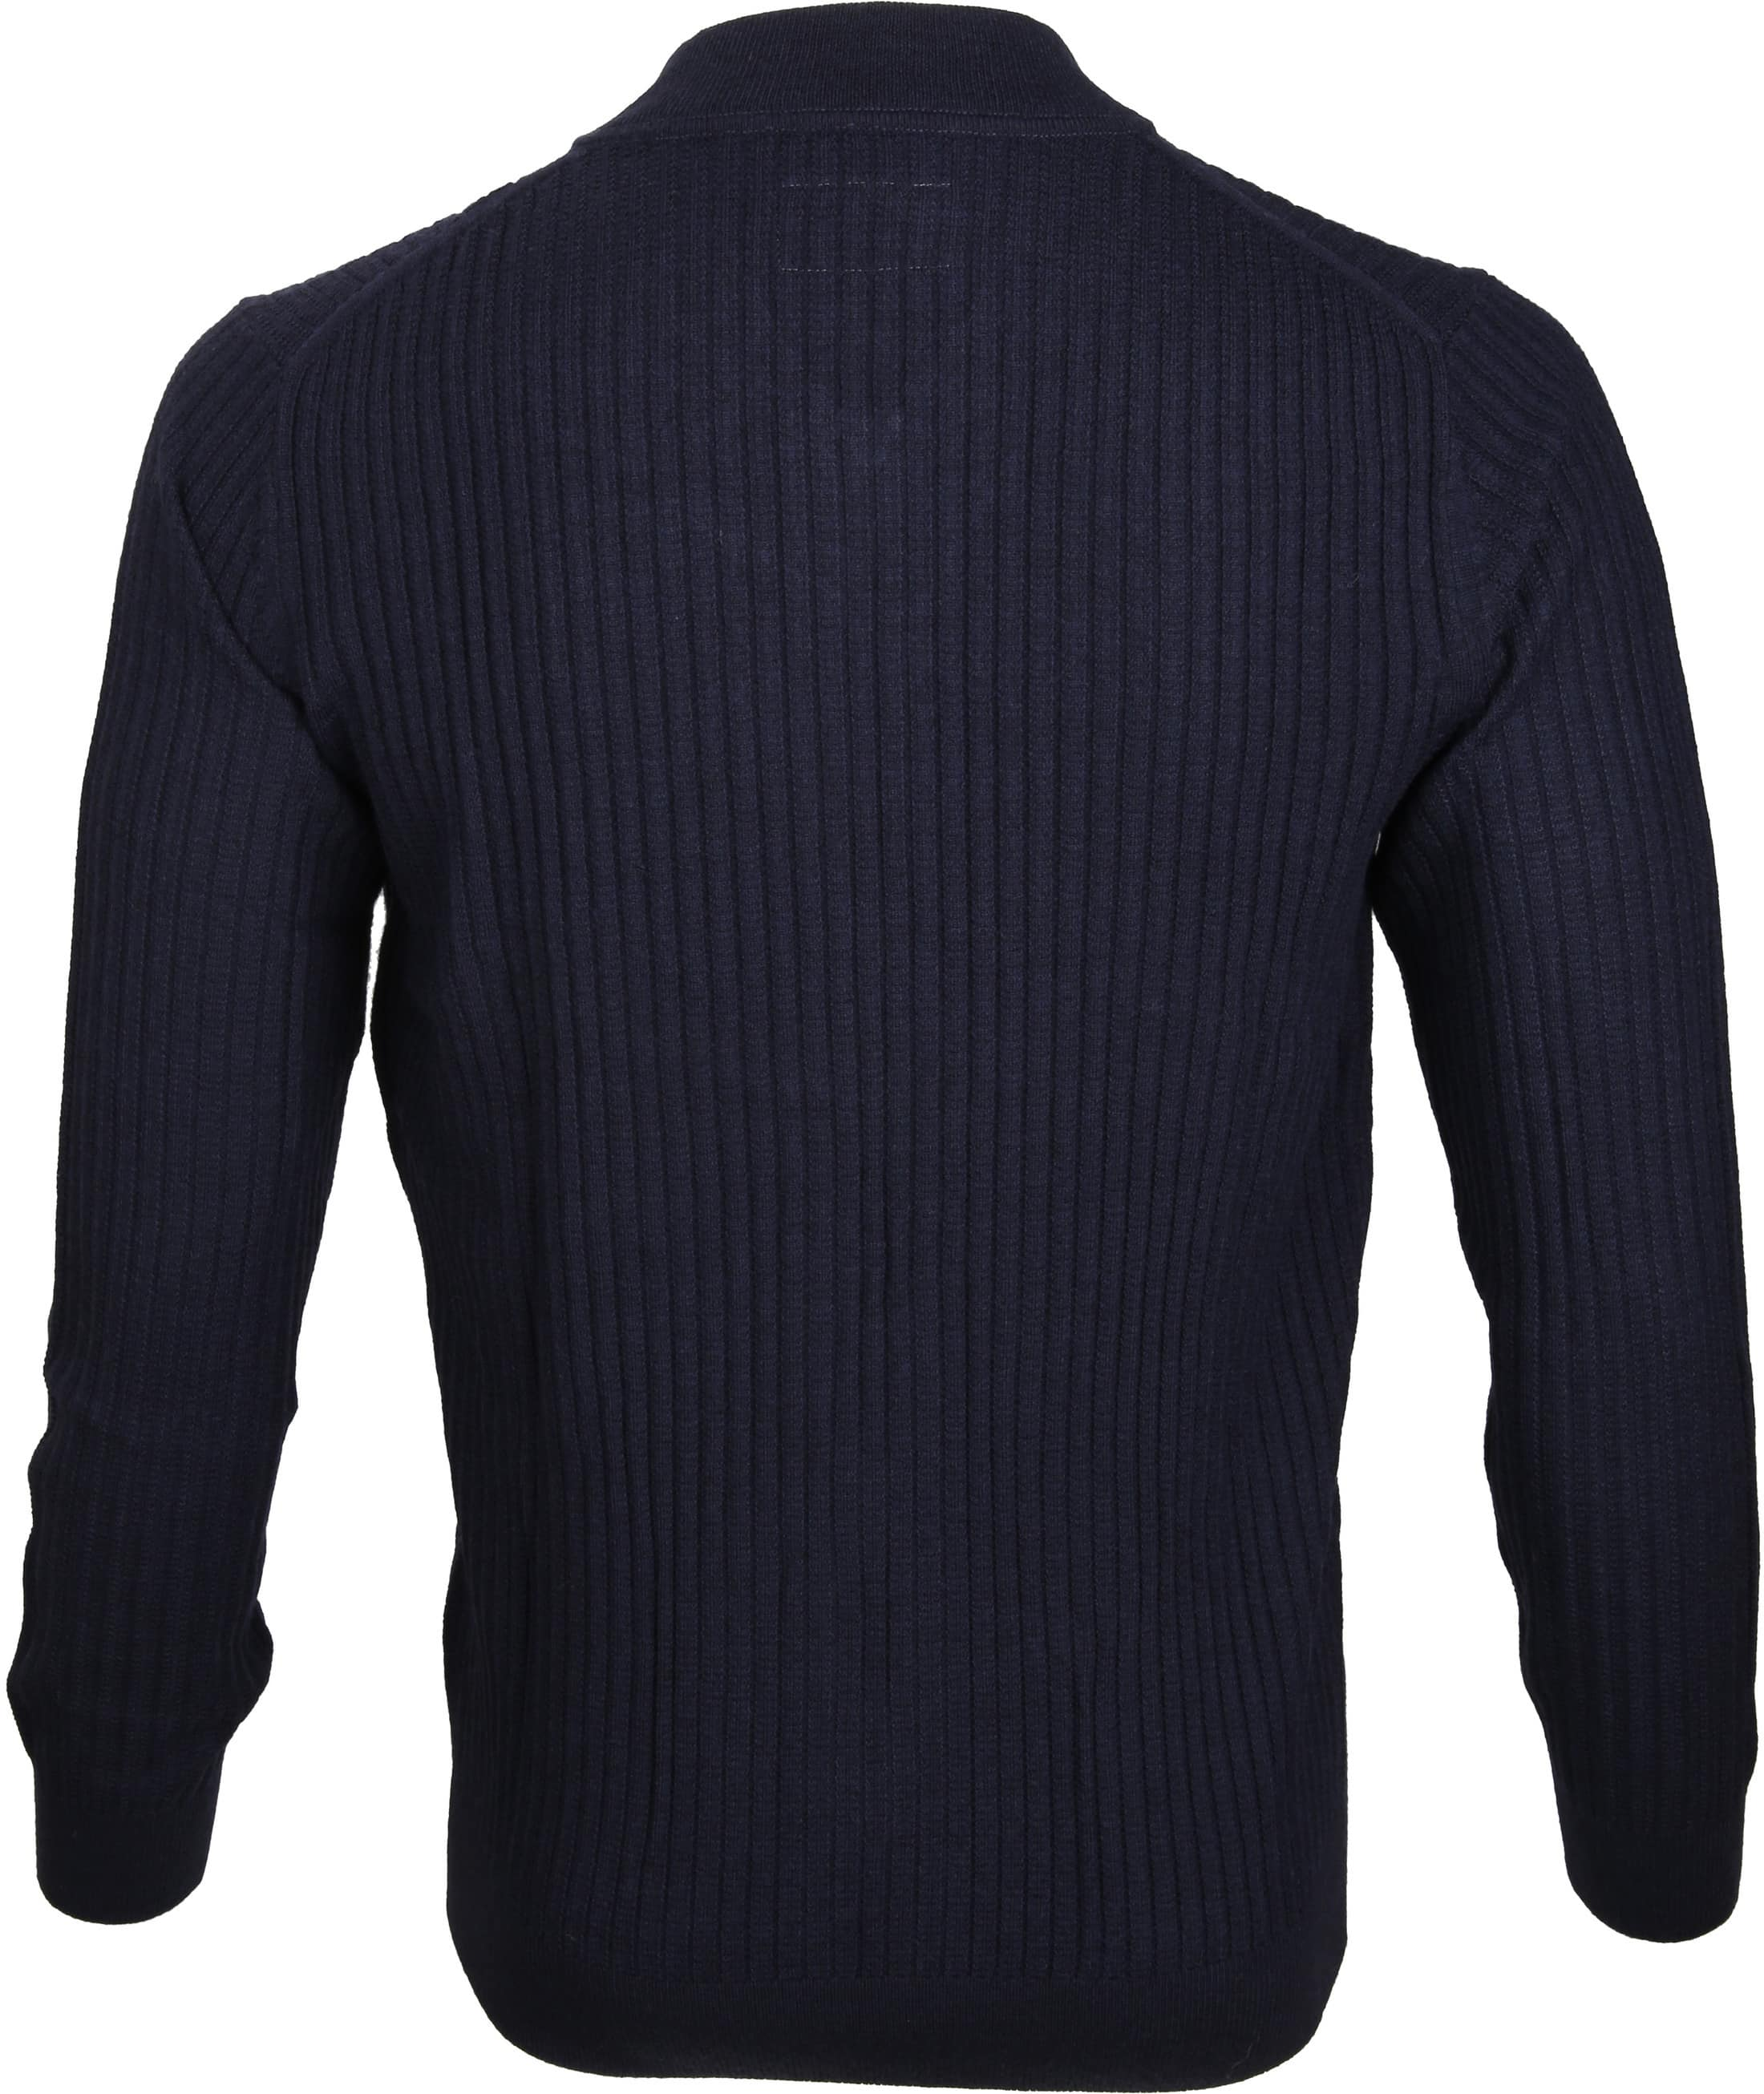 Suitable Prestige Cardigan Navy foto 3